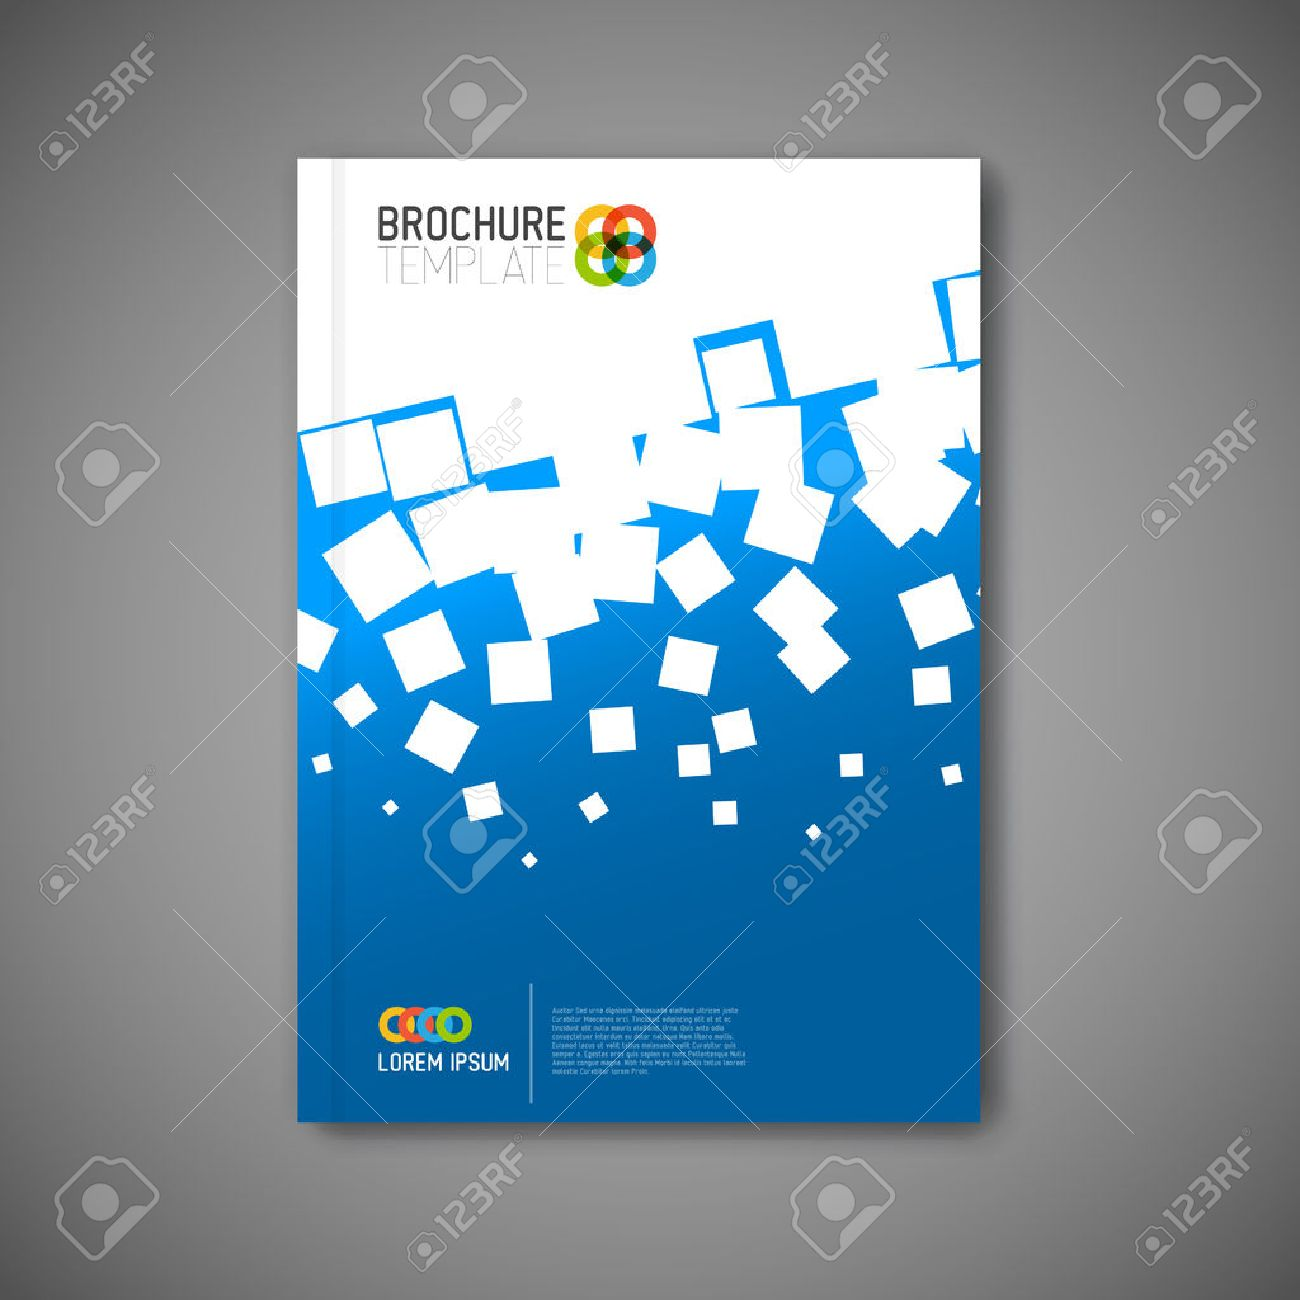 modern abstract brochure report or flyer design template royalty modern abstract brochure report or flyer design template stock vector 33019513